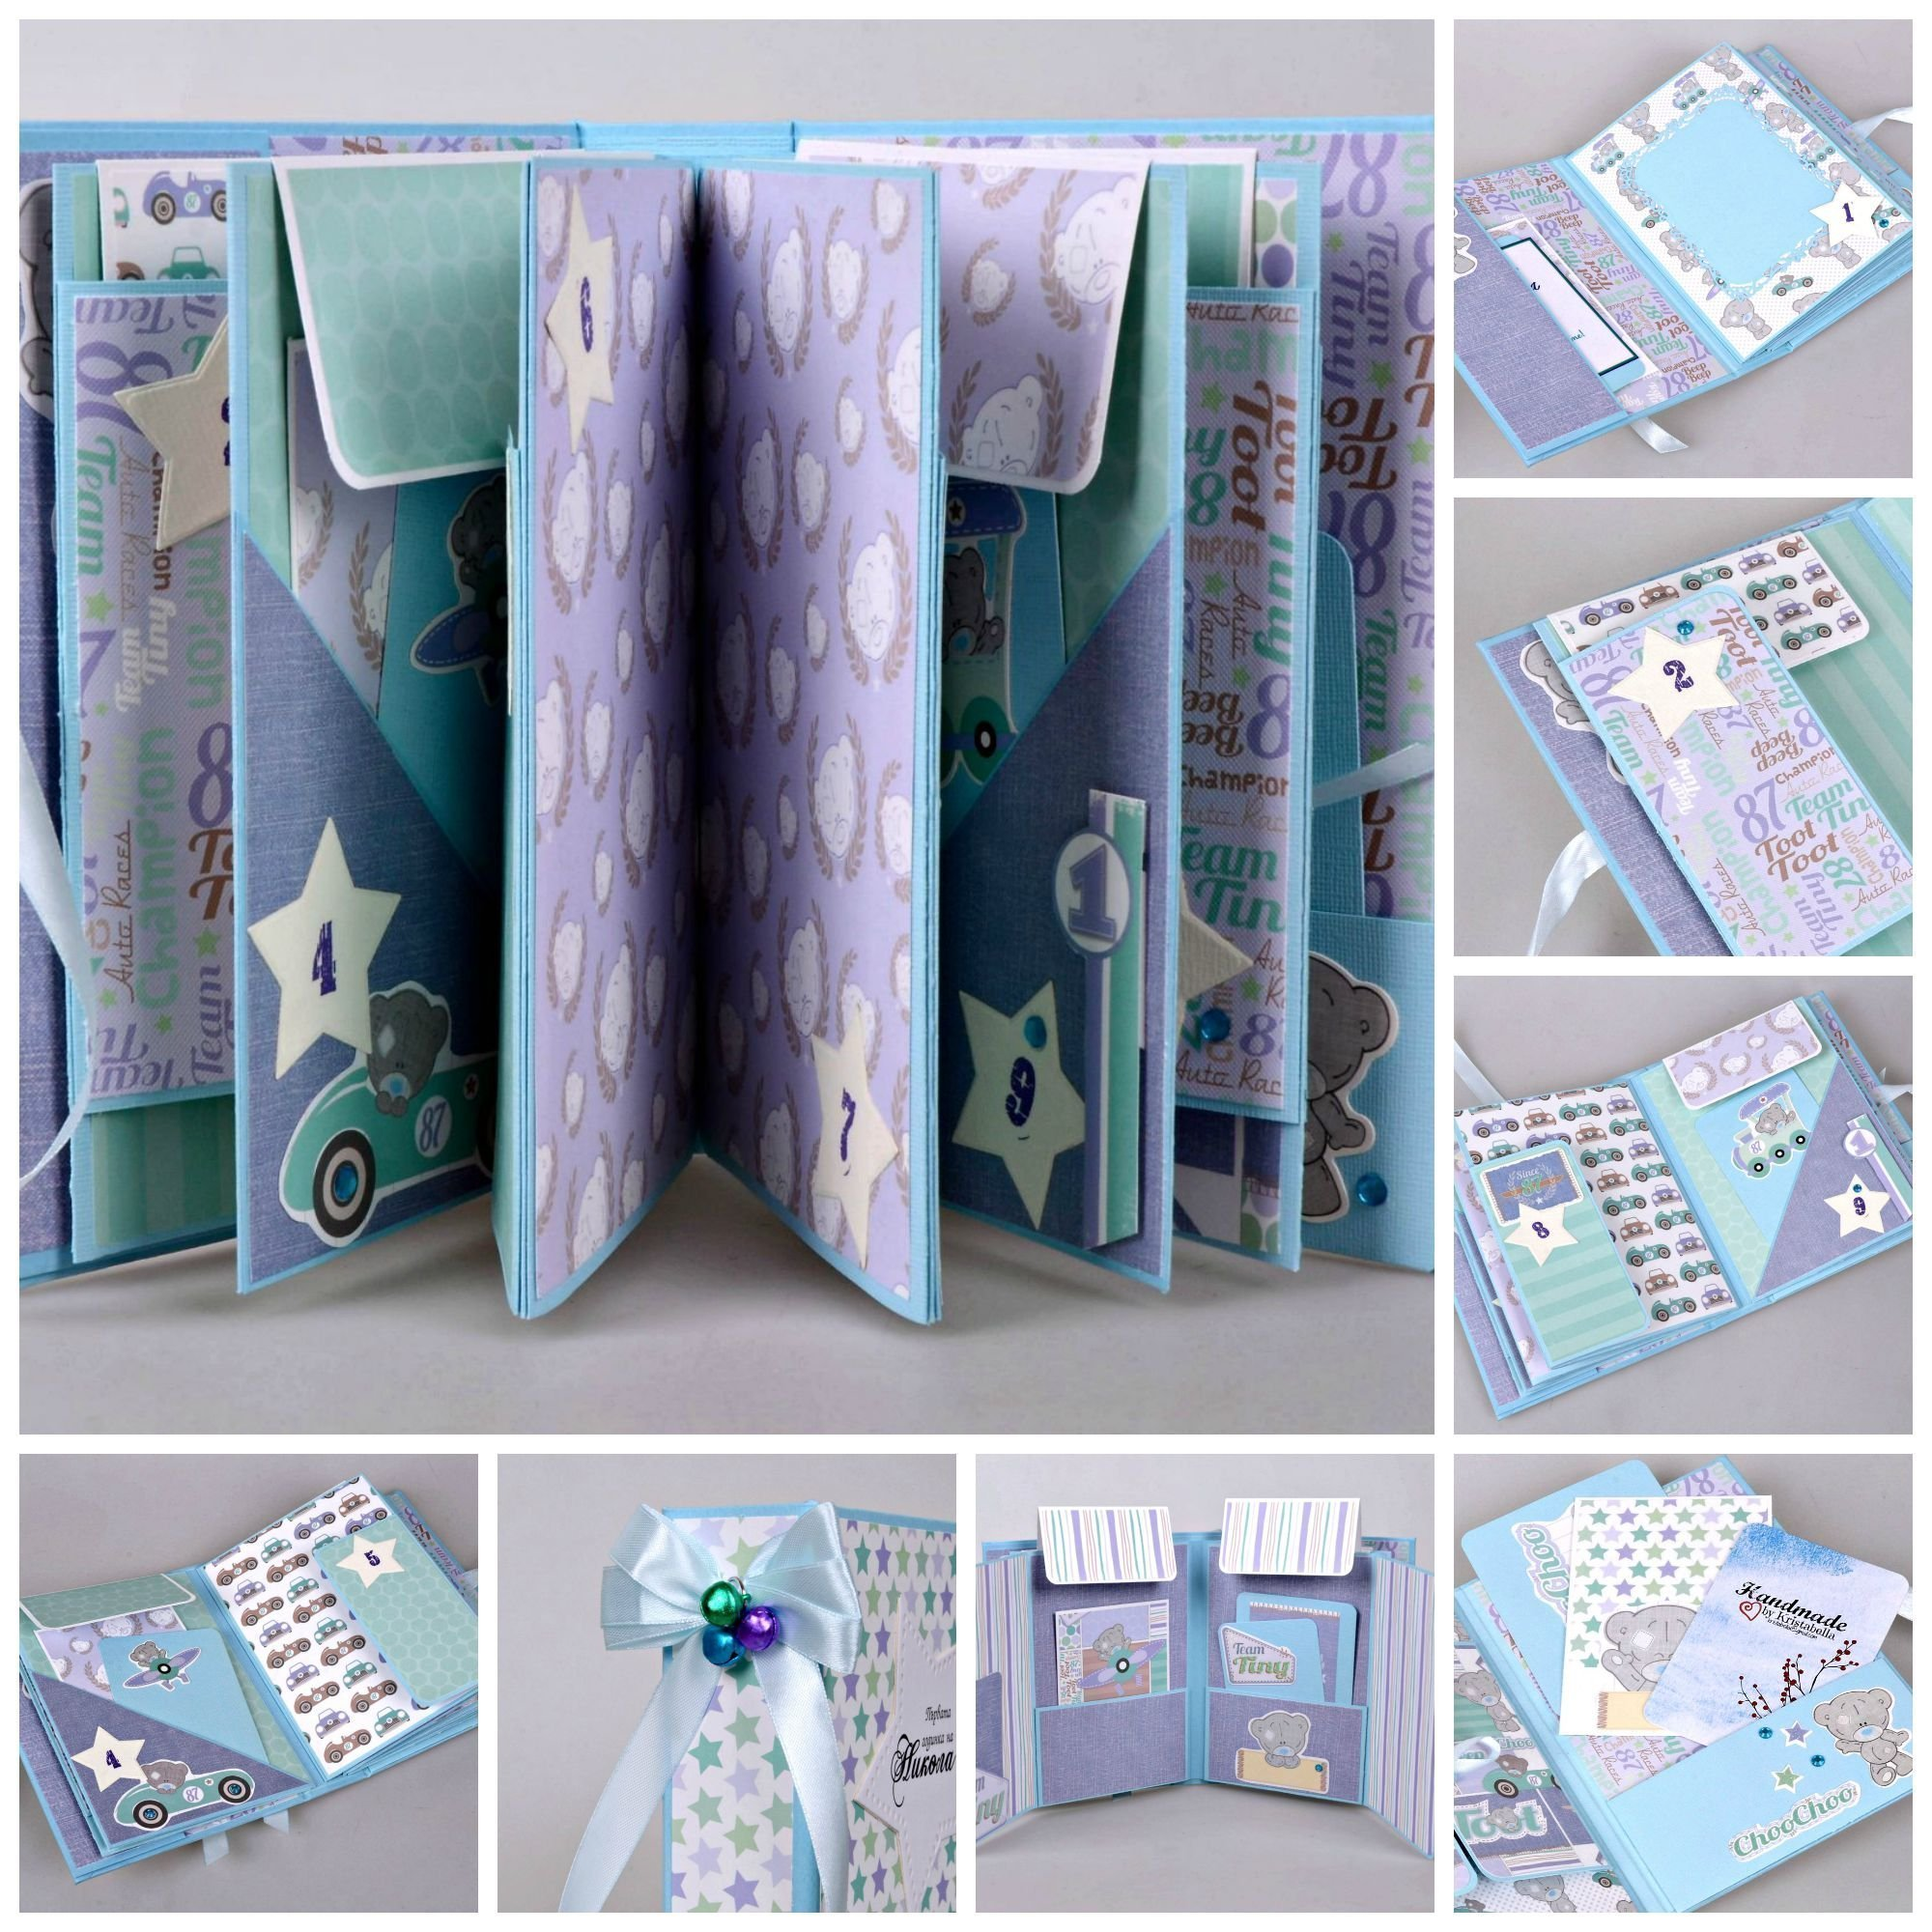 Kristabella Creations Baby Boy Scrapbook Album, Baby Album, First Year Keepsake Album, Personalized Memory Book, Newborn Baby Scrapbook Album, Baby Shower Gift, size 8x6 inches